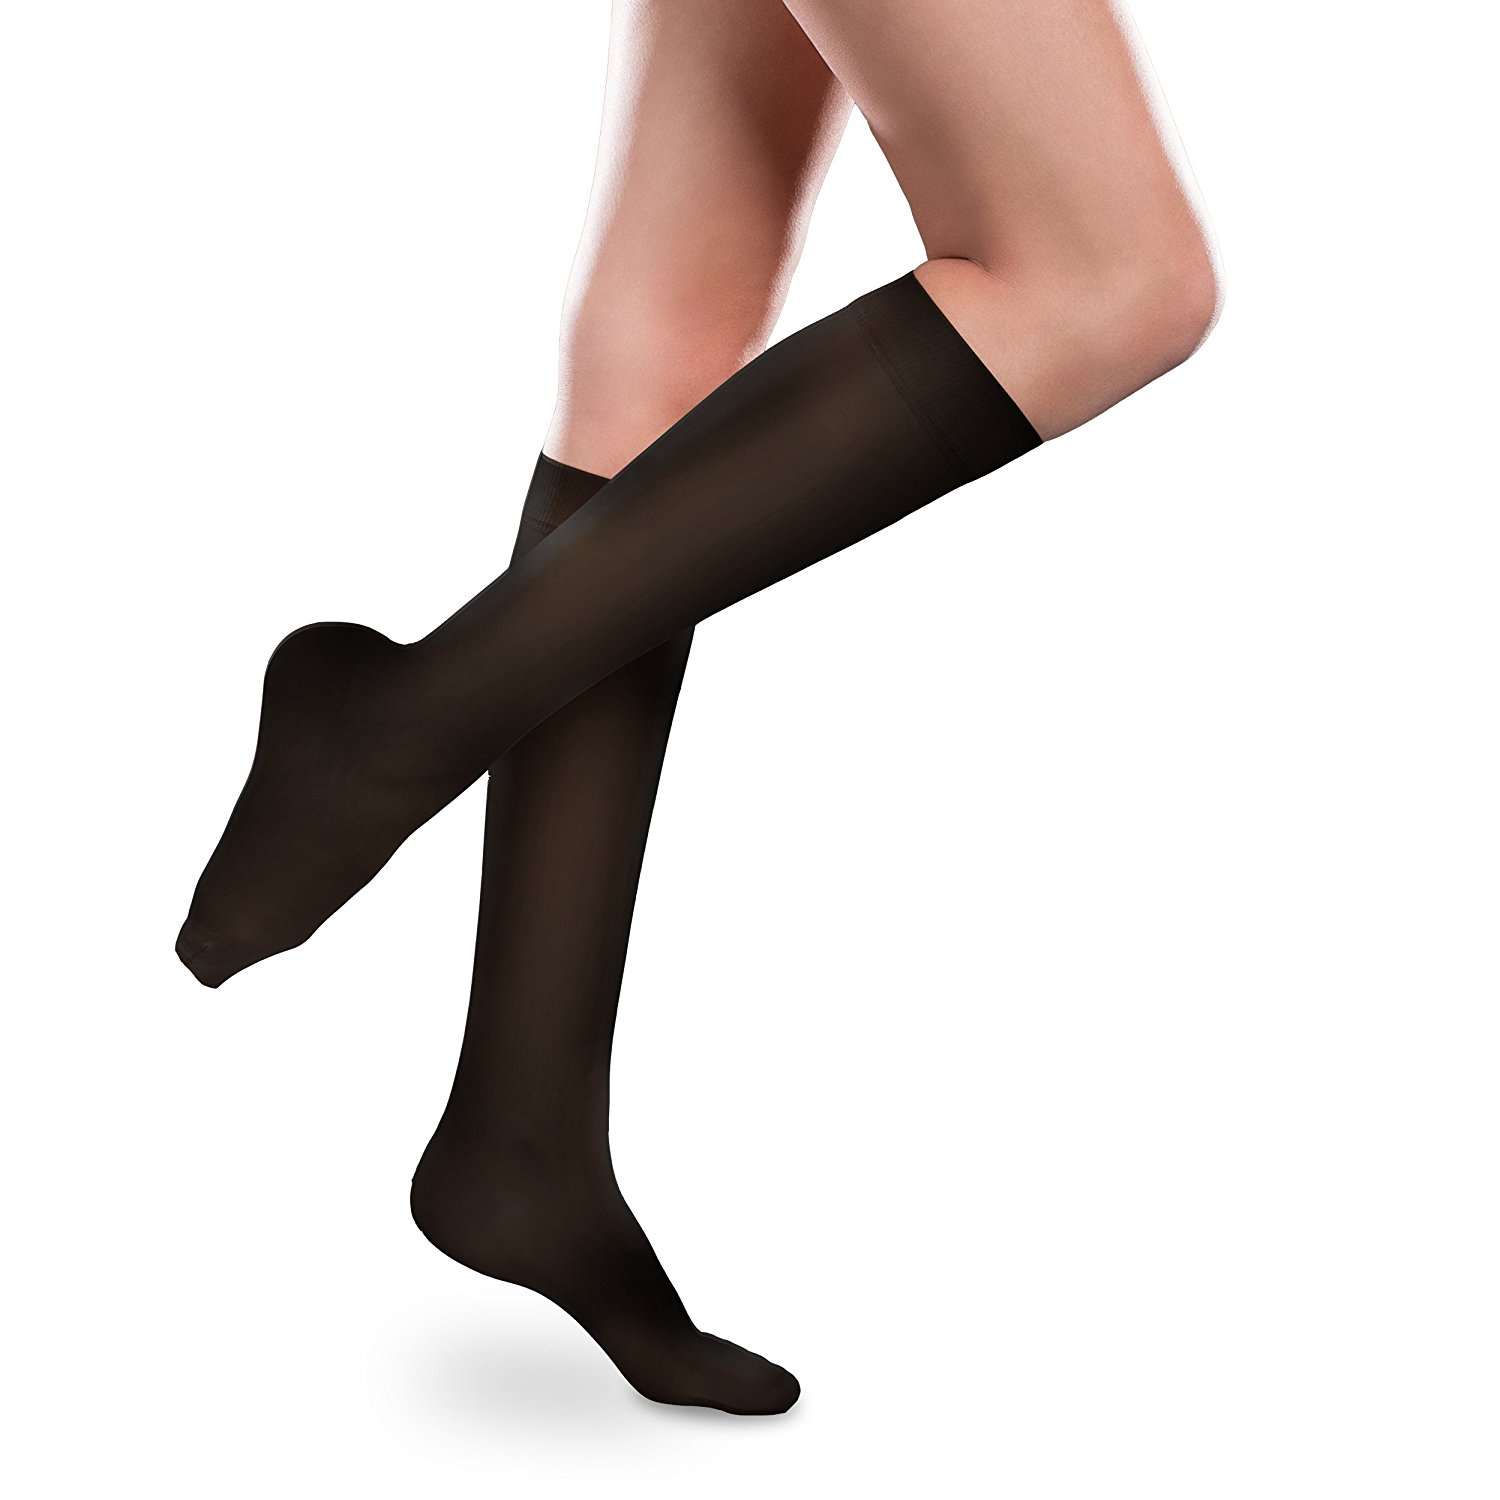 3e693645ba7 Get Quotations · Sheer Ease Women s Knee High Support Stockings - 30-40mmHg  Firm Compression Nylons (Black